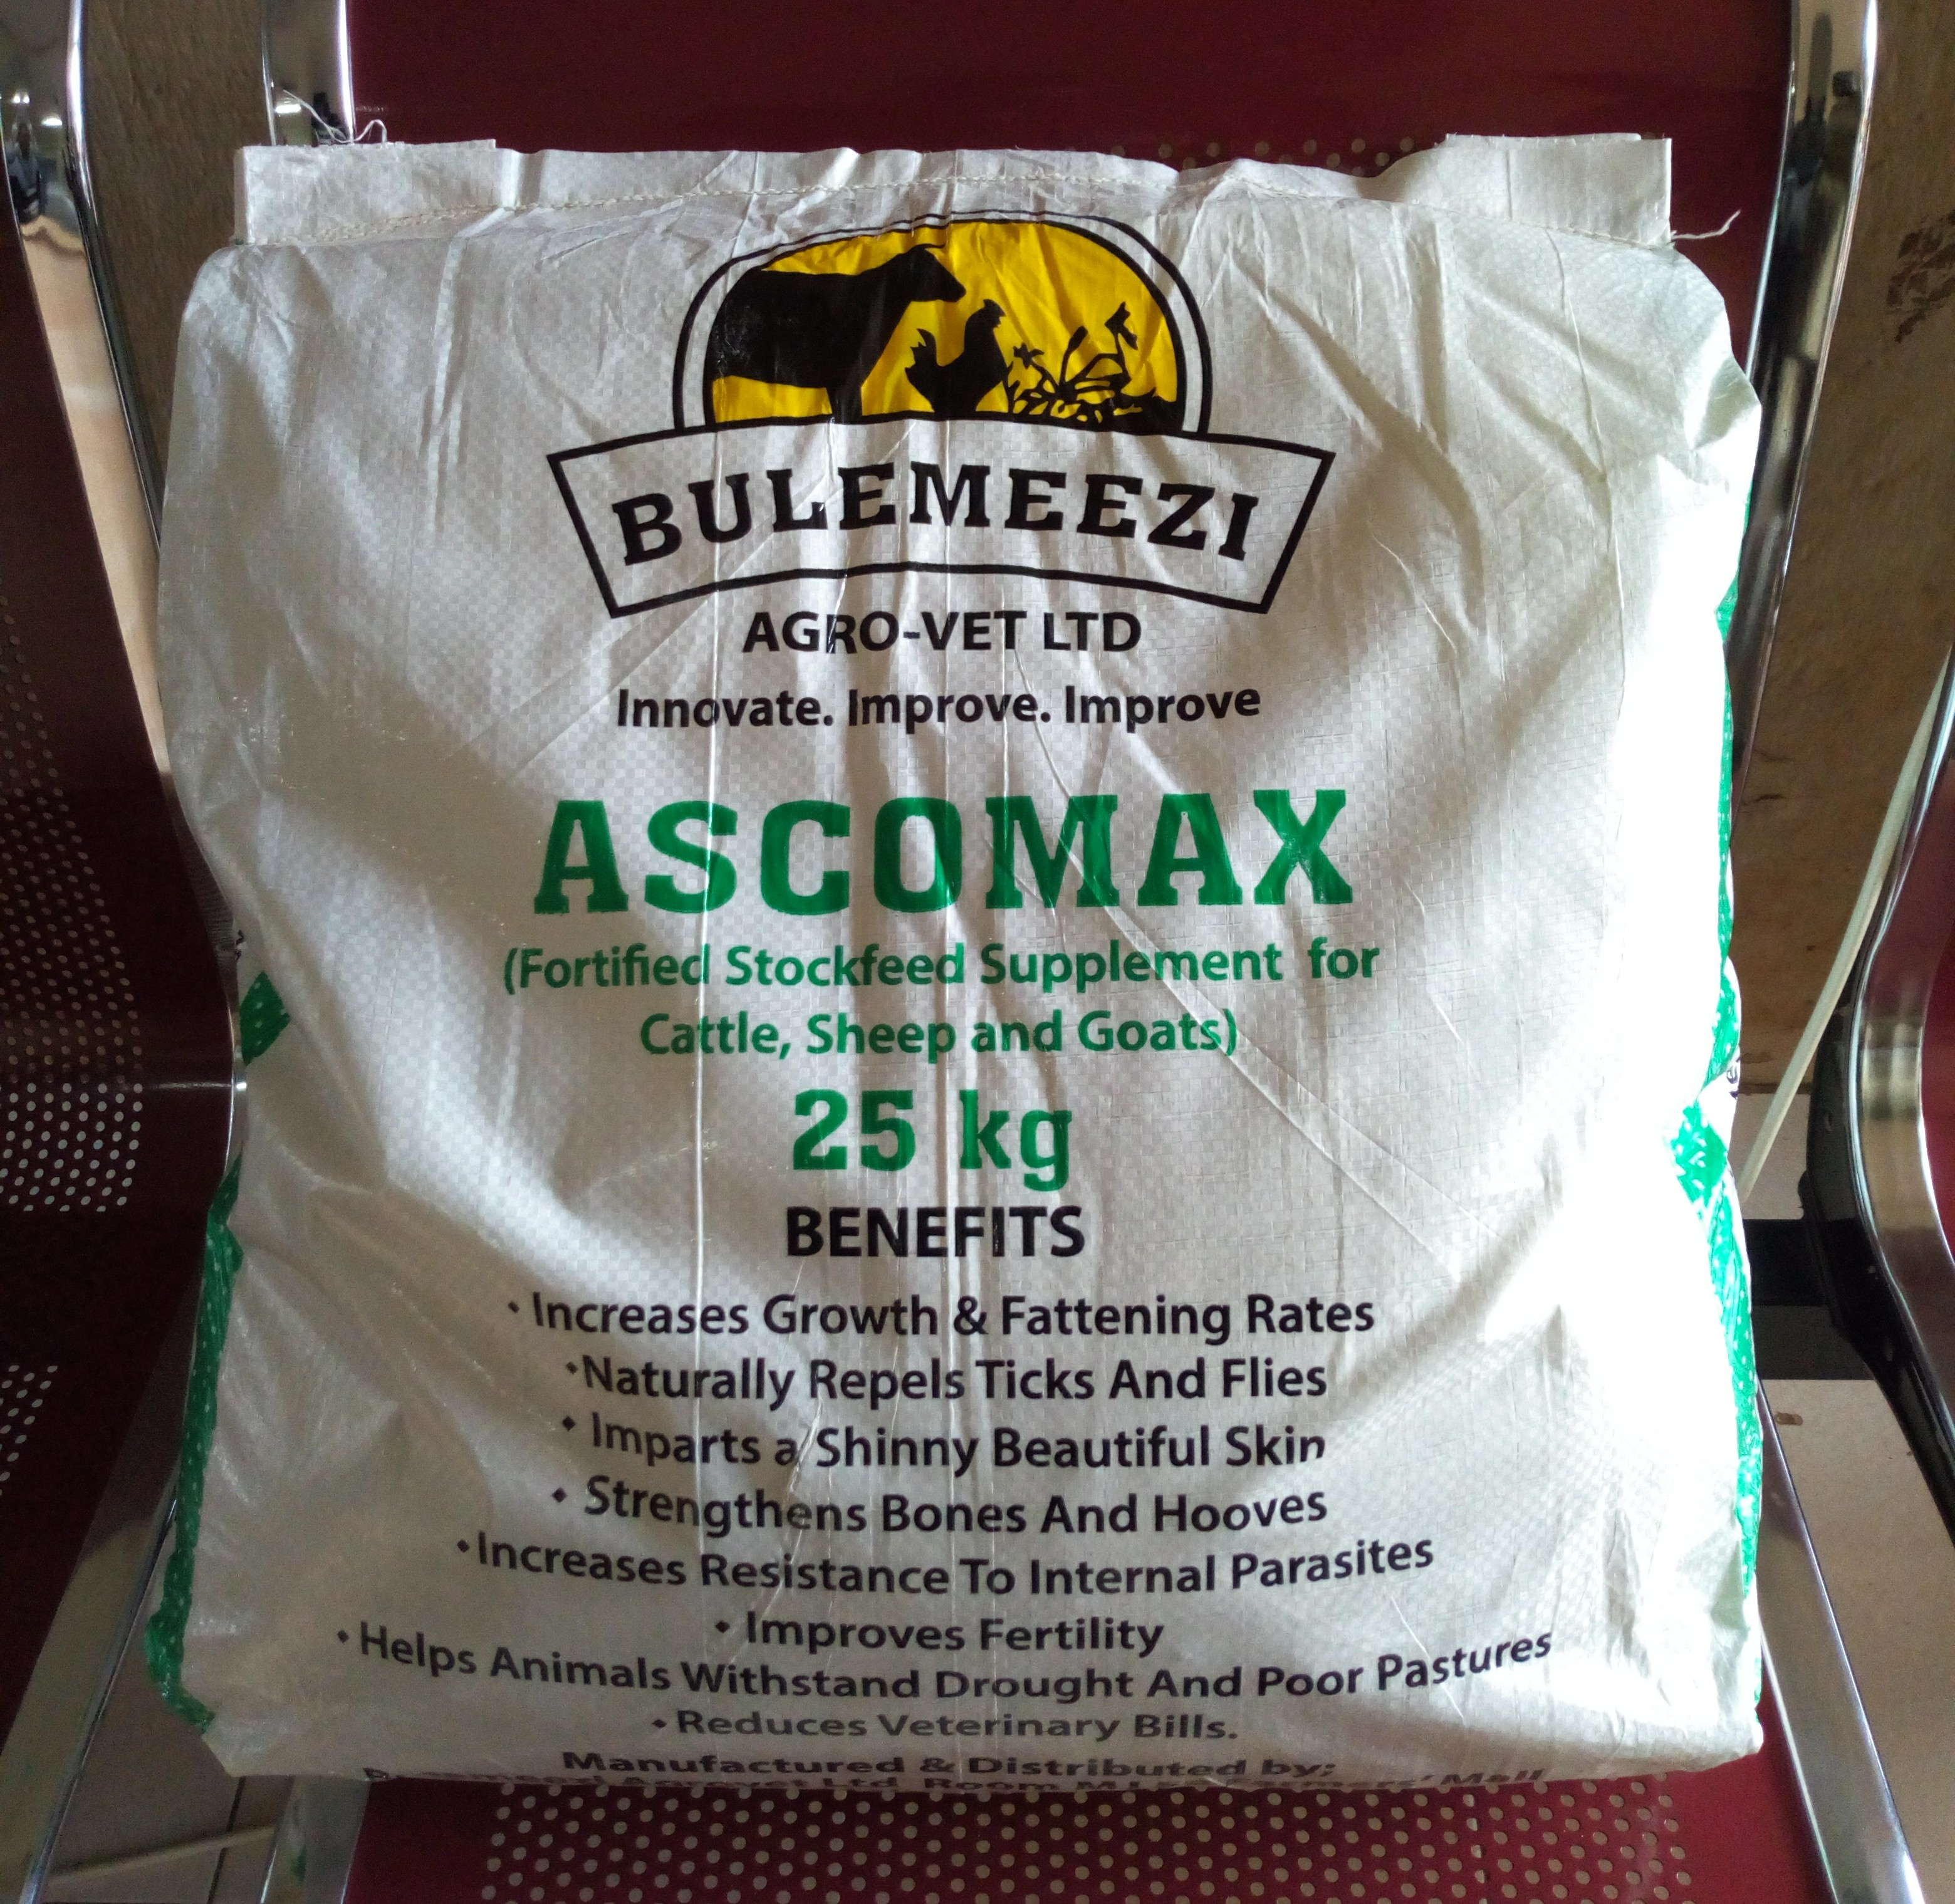 Ascomax (Fortified Stockfeed Supplement )